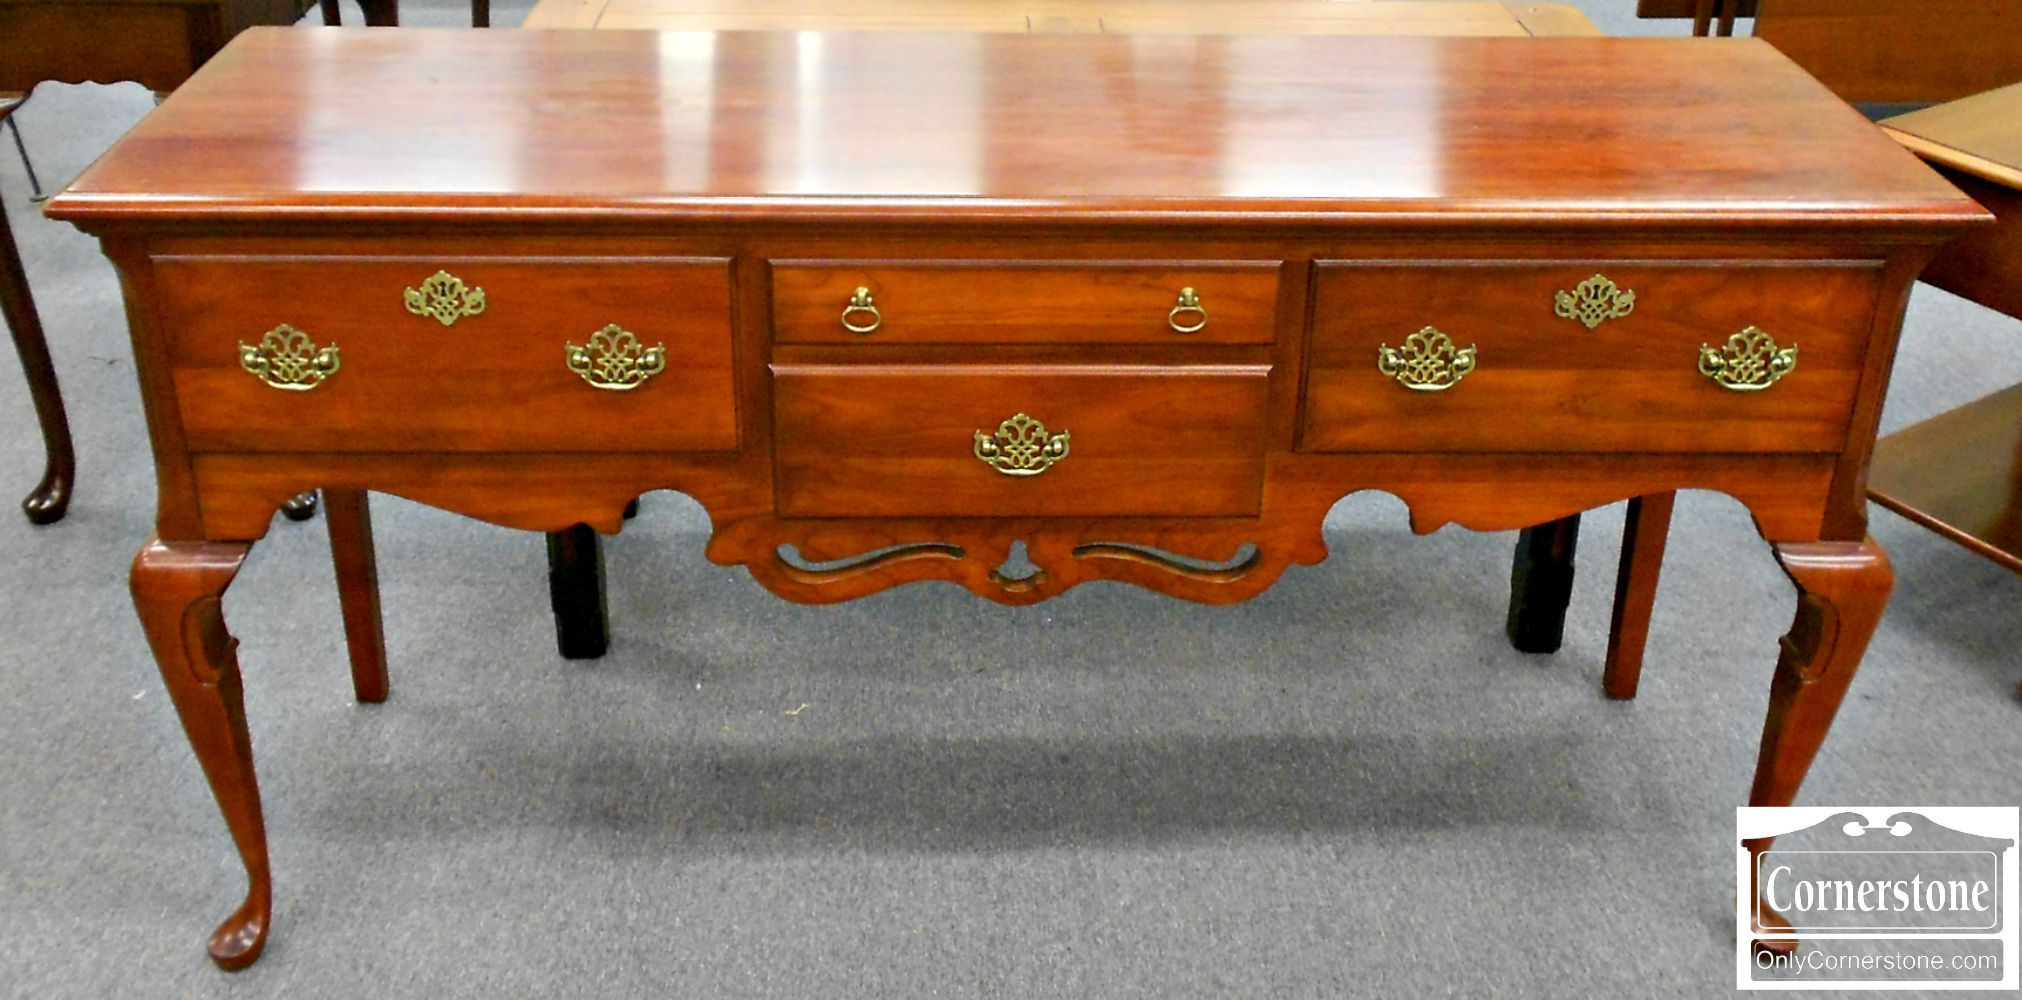 5670-530 PA House Solid Cherry Queen Anne Huntboard Sideboard